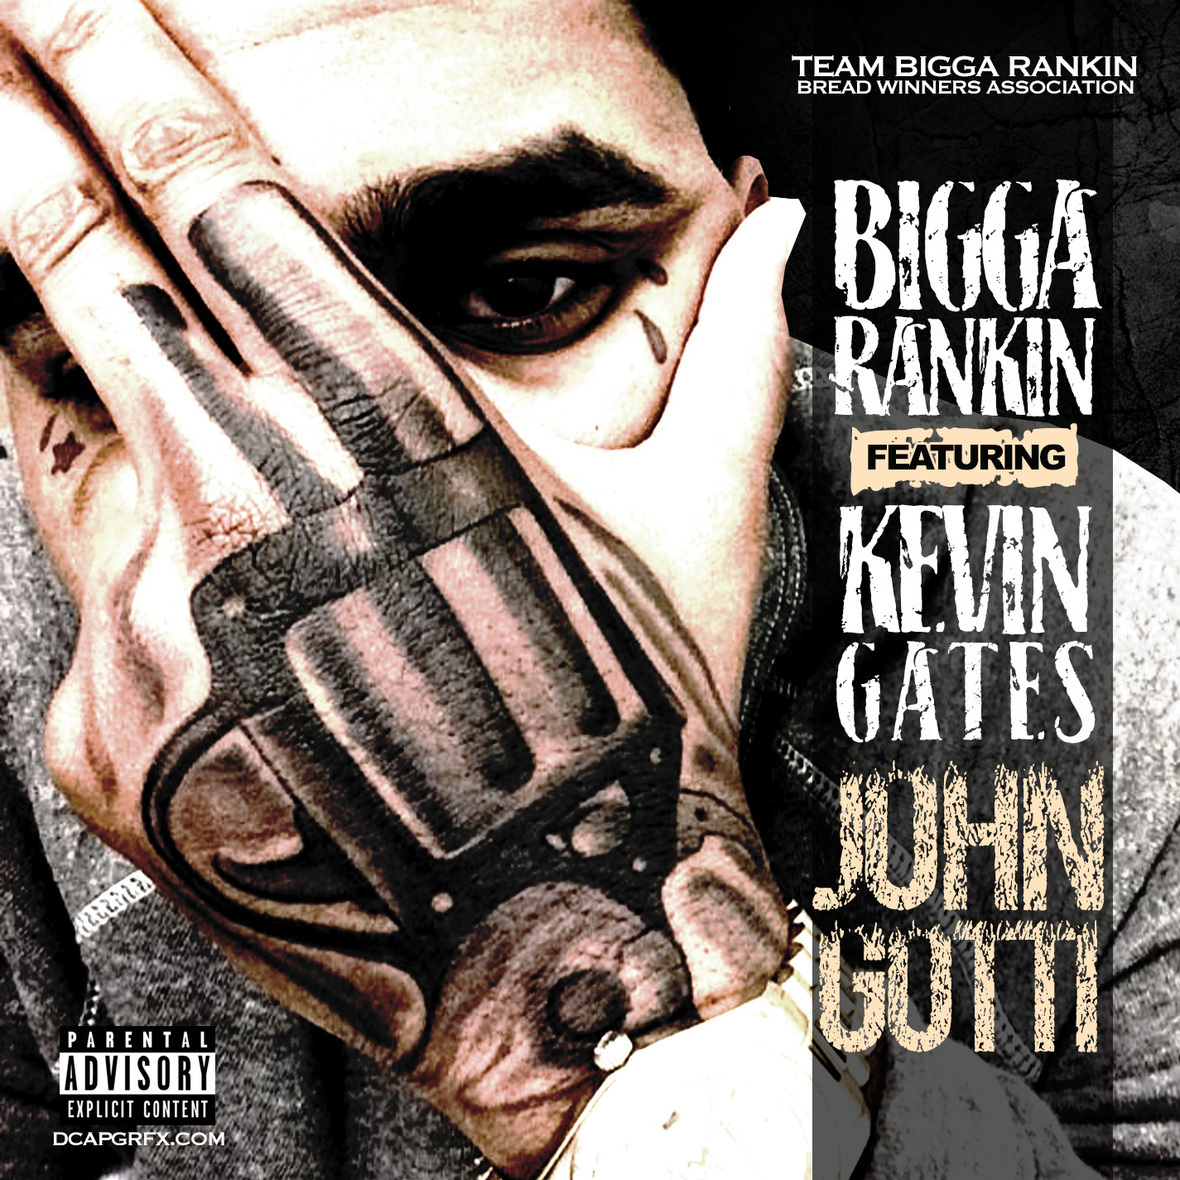 bigga rankin, kevin gates